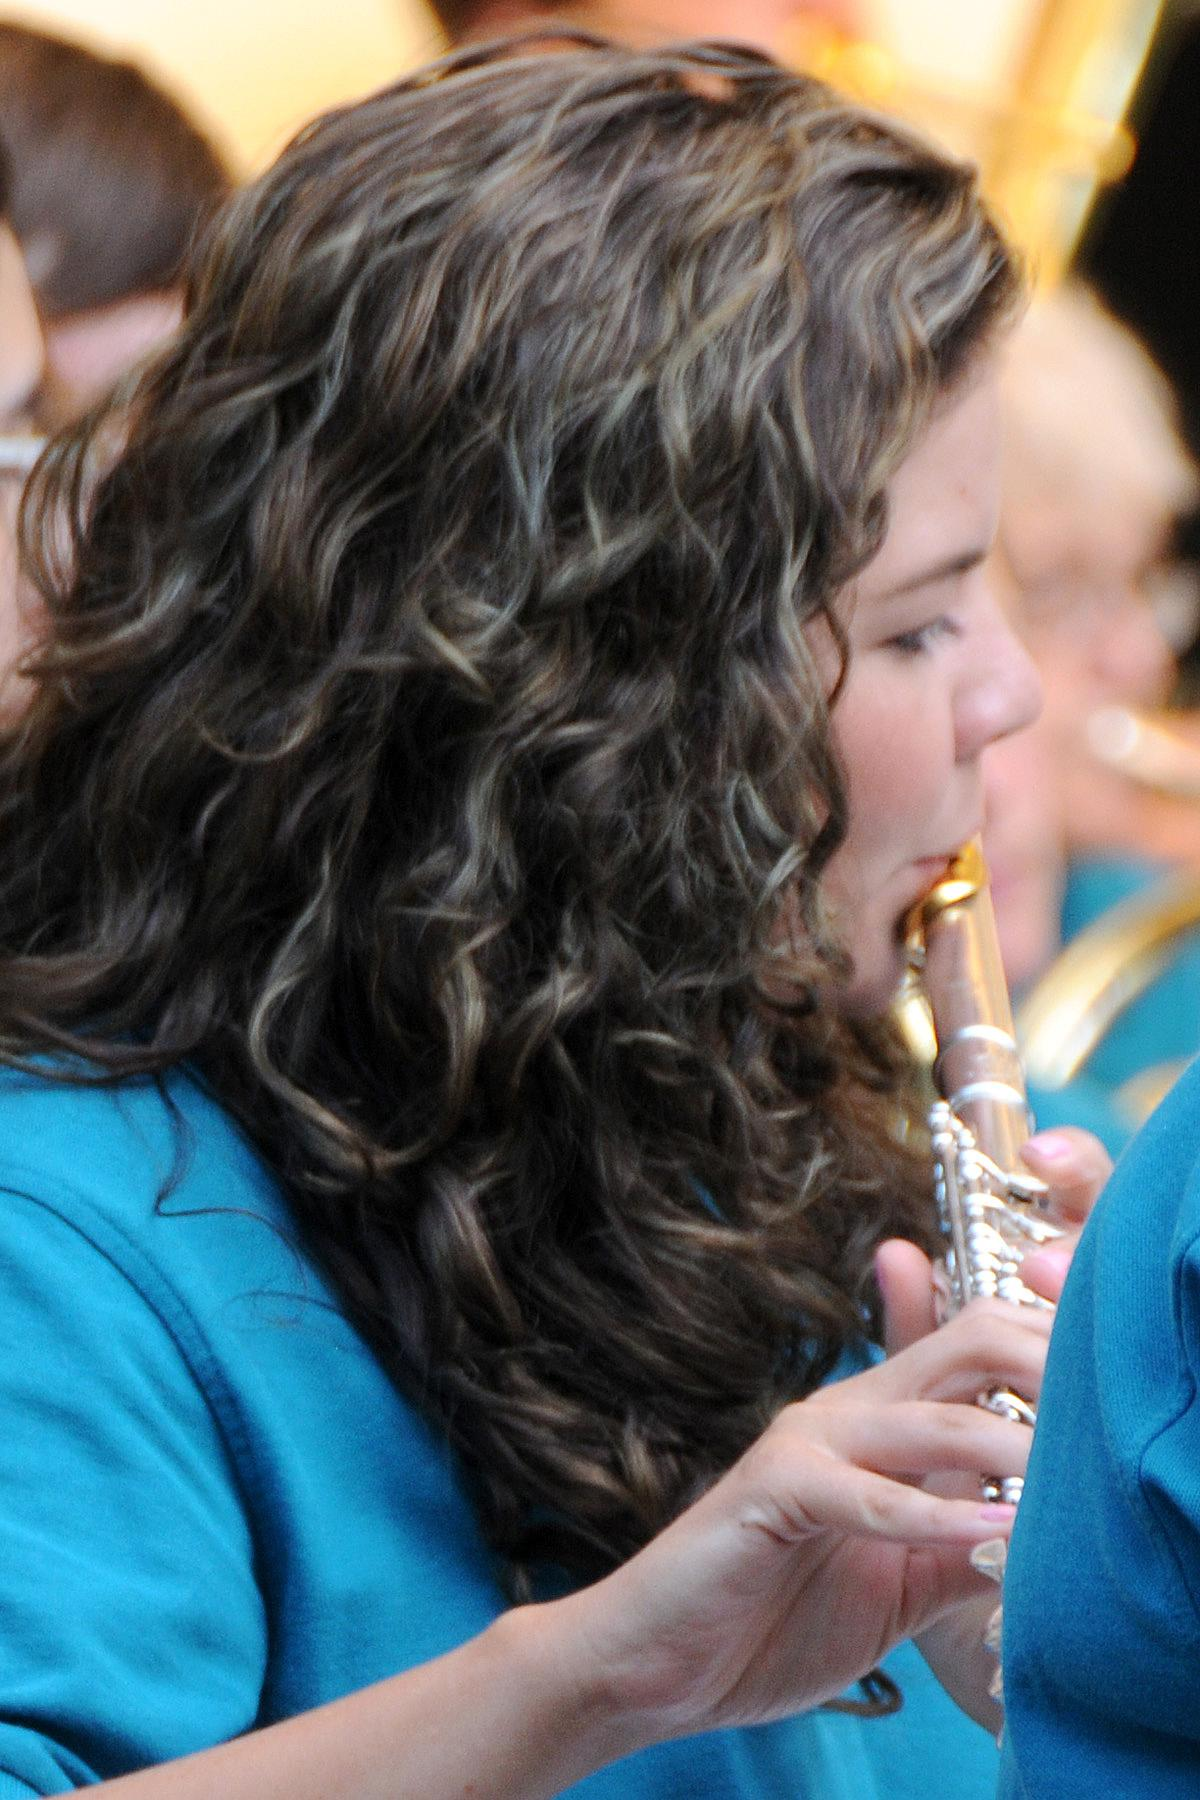 Devon Ivie hits the high notes during the performance of a rousing march. (Photo by Jim Flint)